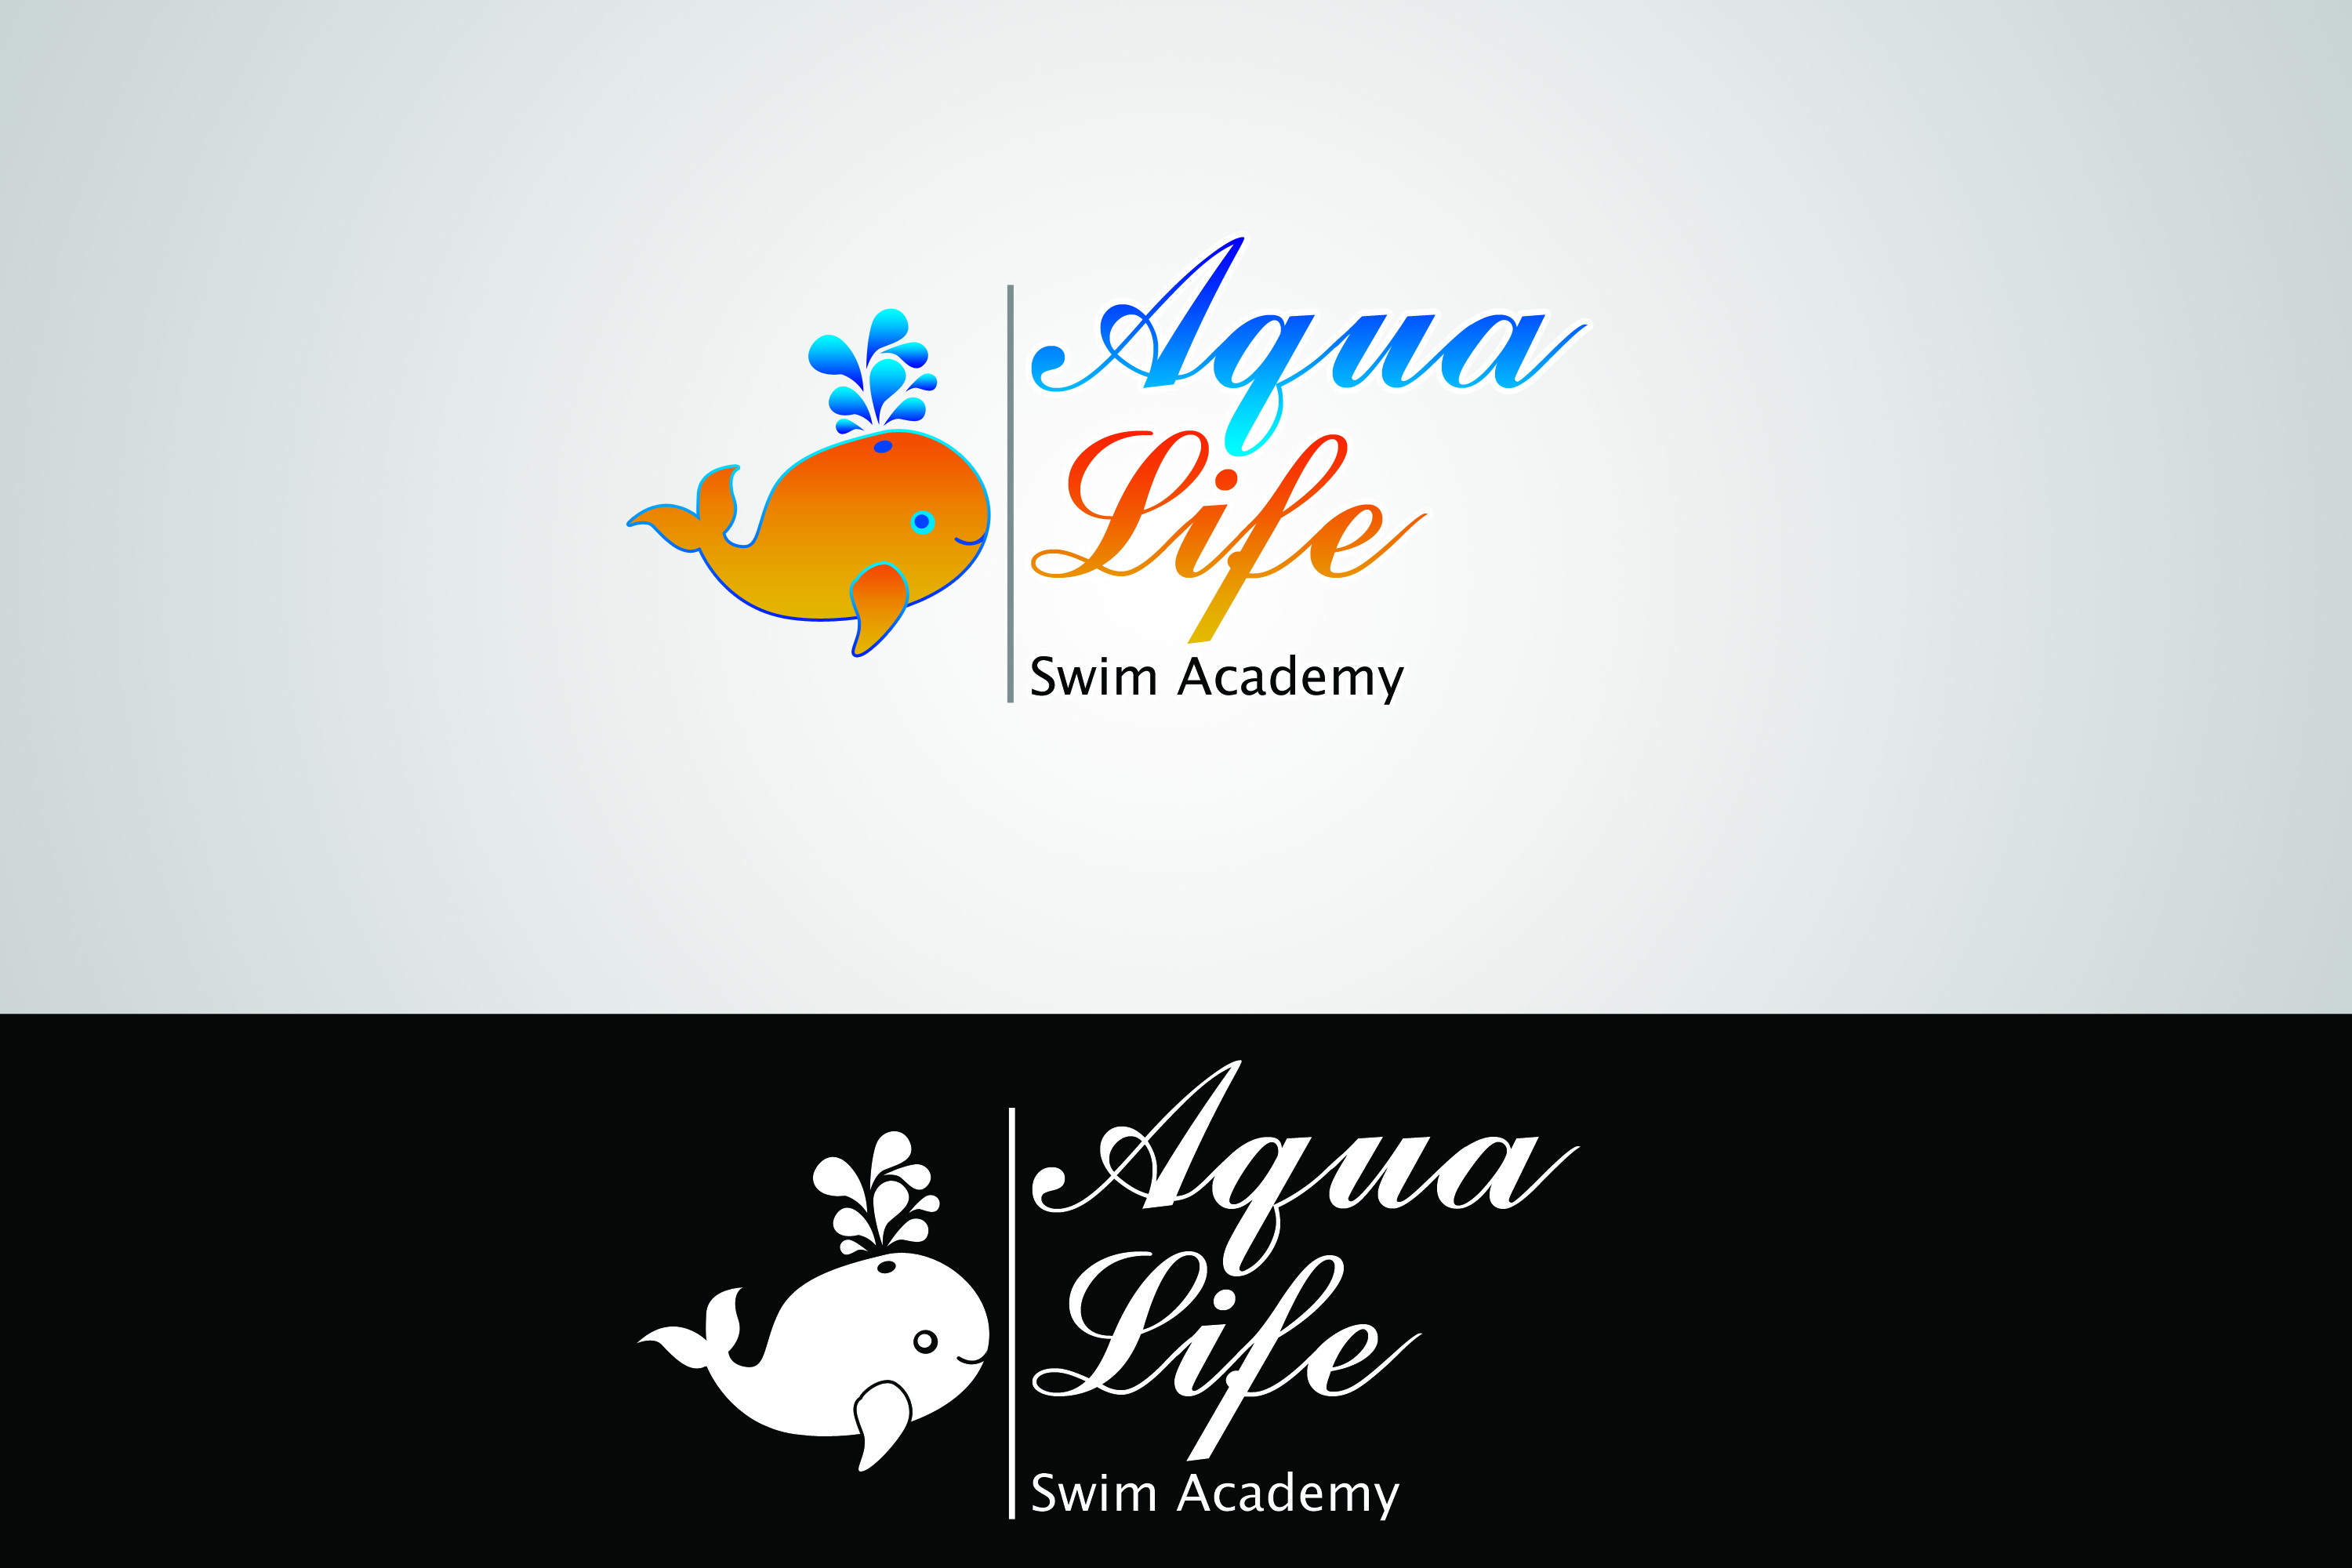 Logo Design by Private User - Entry No. 39 in the Logo Design Contest Artistic Logo Design Wanted for The Aqua Life Swim Academy.